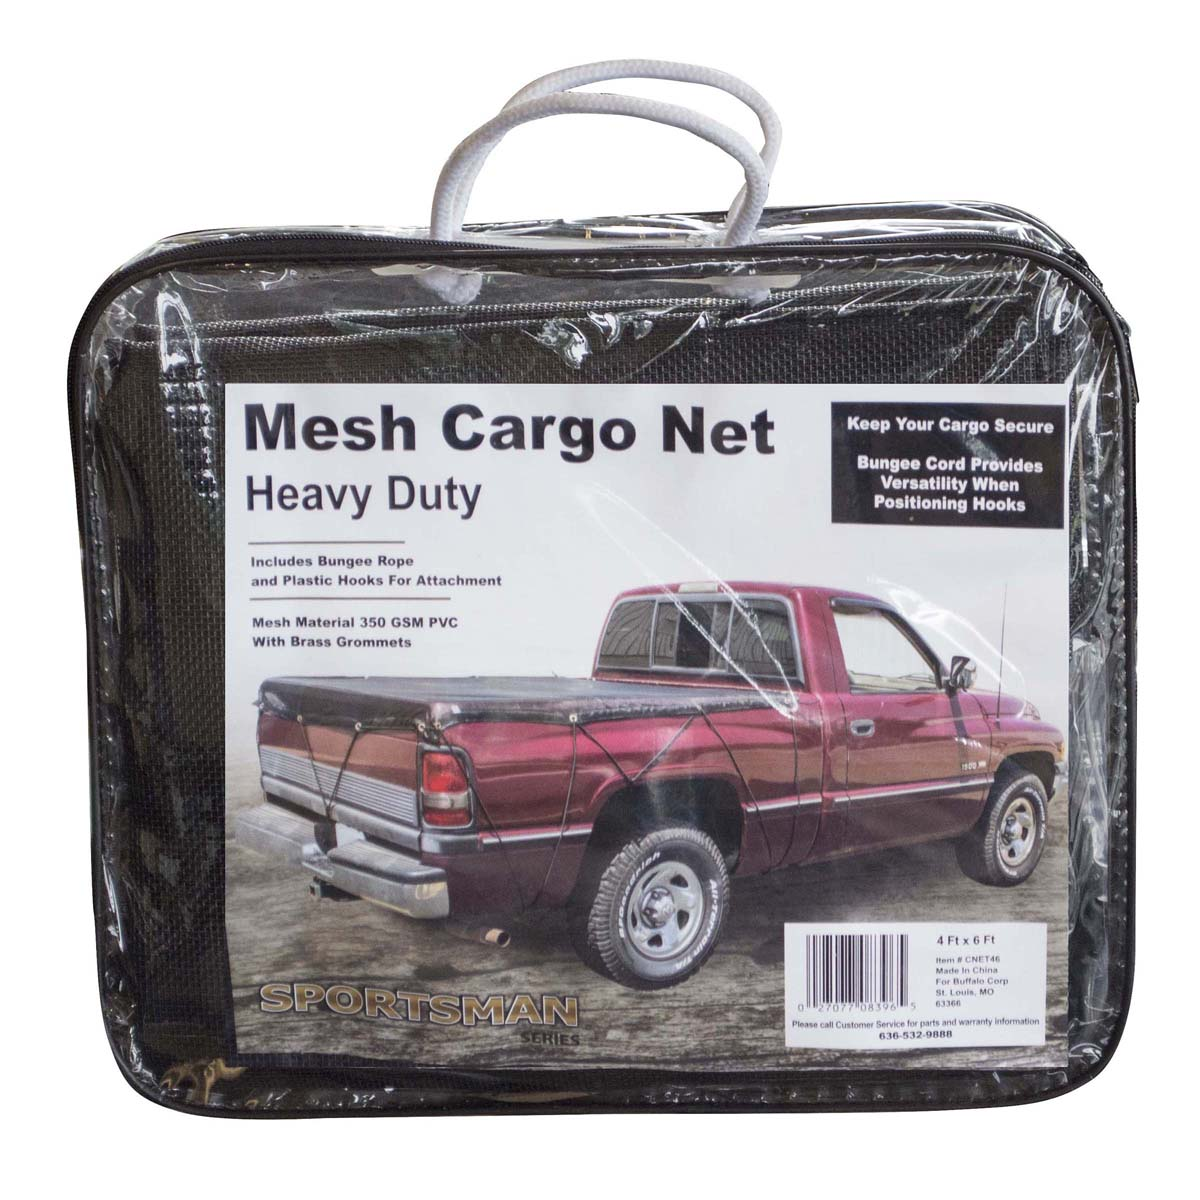 Heavy Duty Mesh Truck Bed Cargo Net Cover 4 ft. x 6 ft